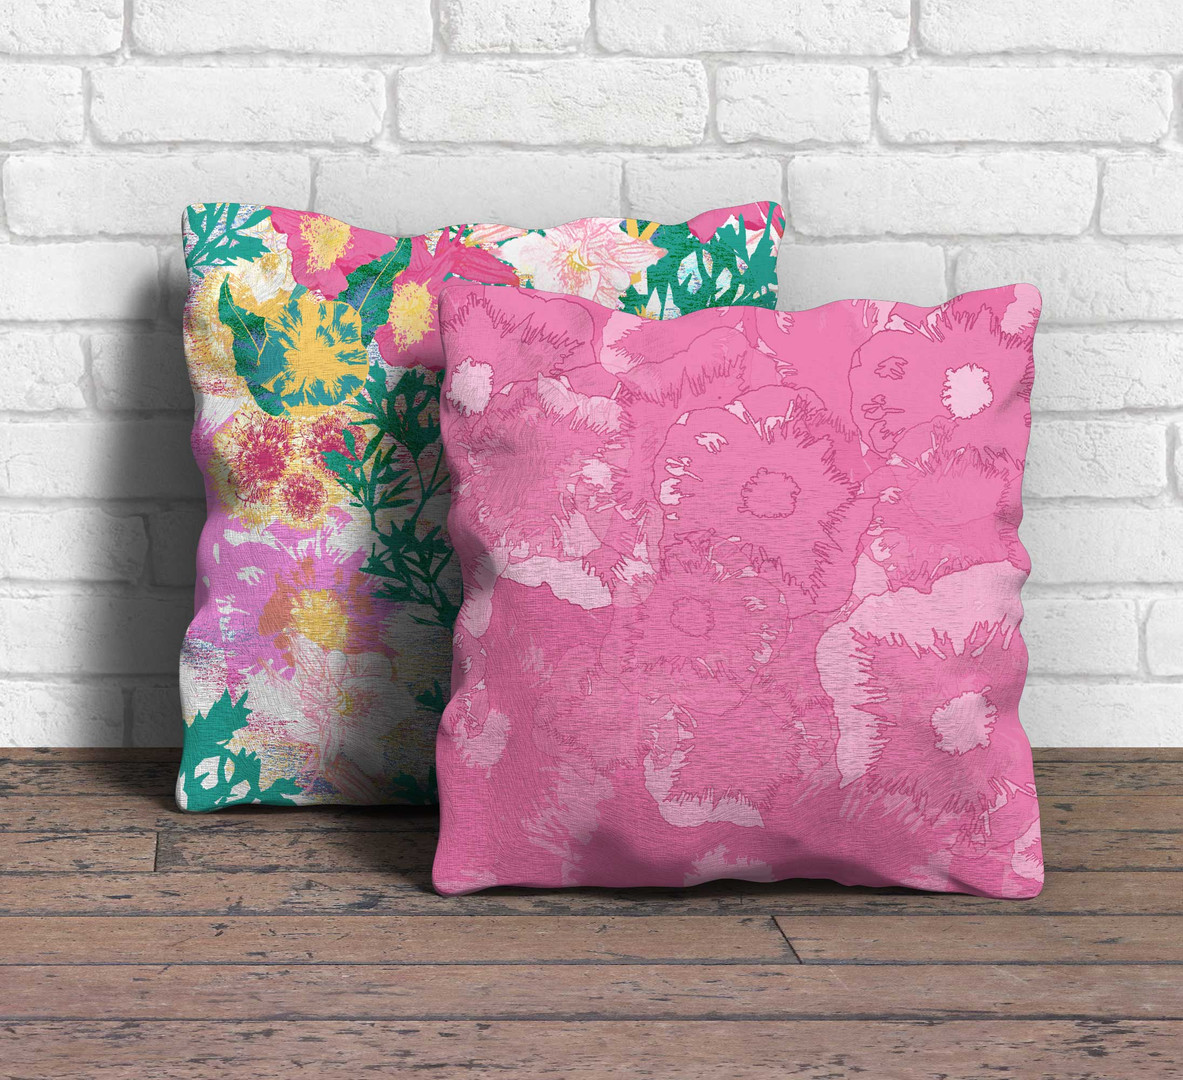 Floral collage cushions